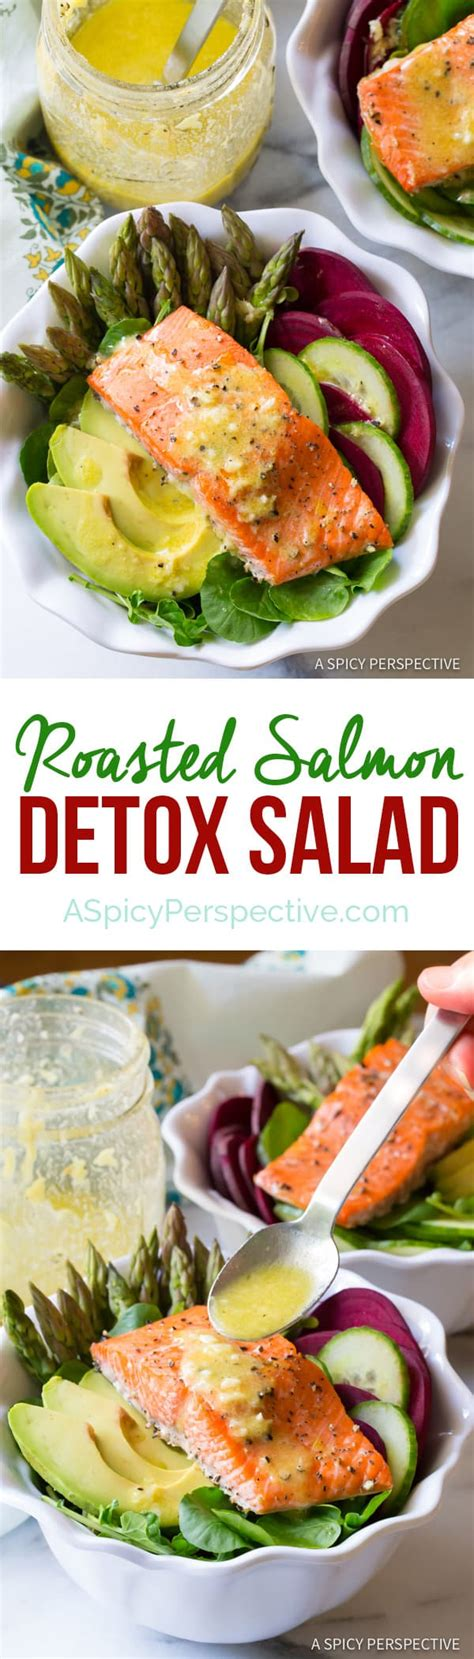 Http Autoimmune Paleo Zesty Detox Salad by Roasted Salmon Detox Salad A Spicy Perspective